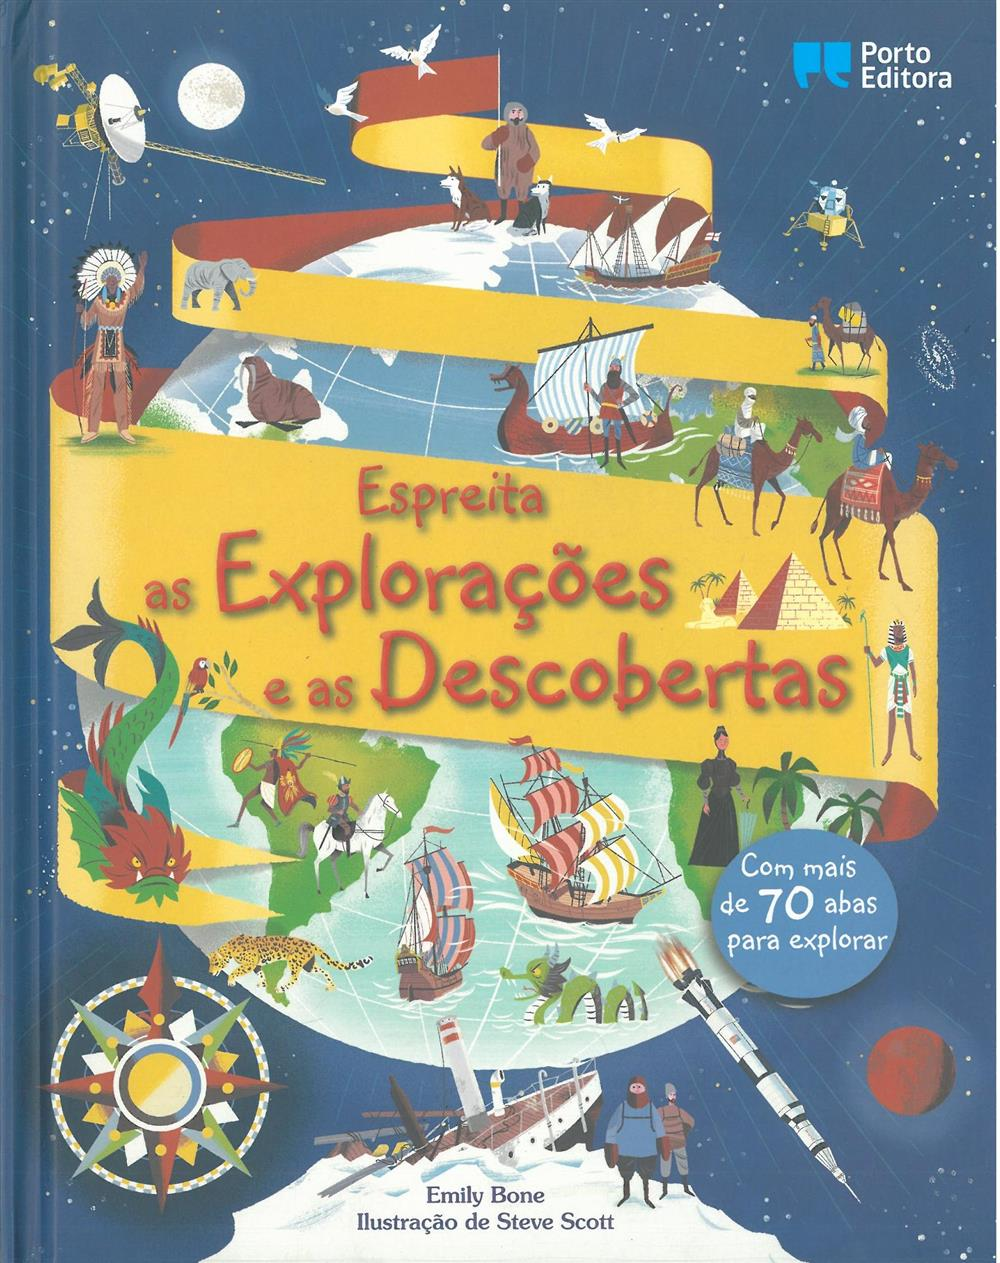 Espreita as explorações e as descobertas_.jpg